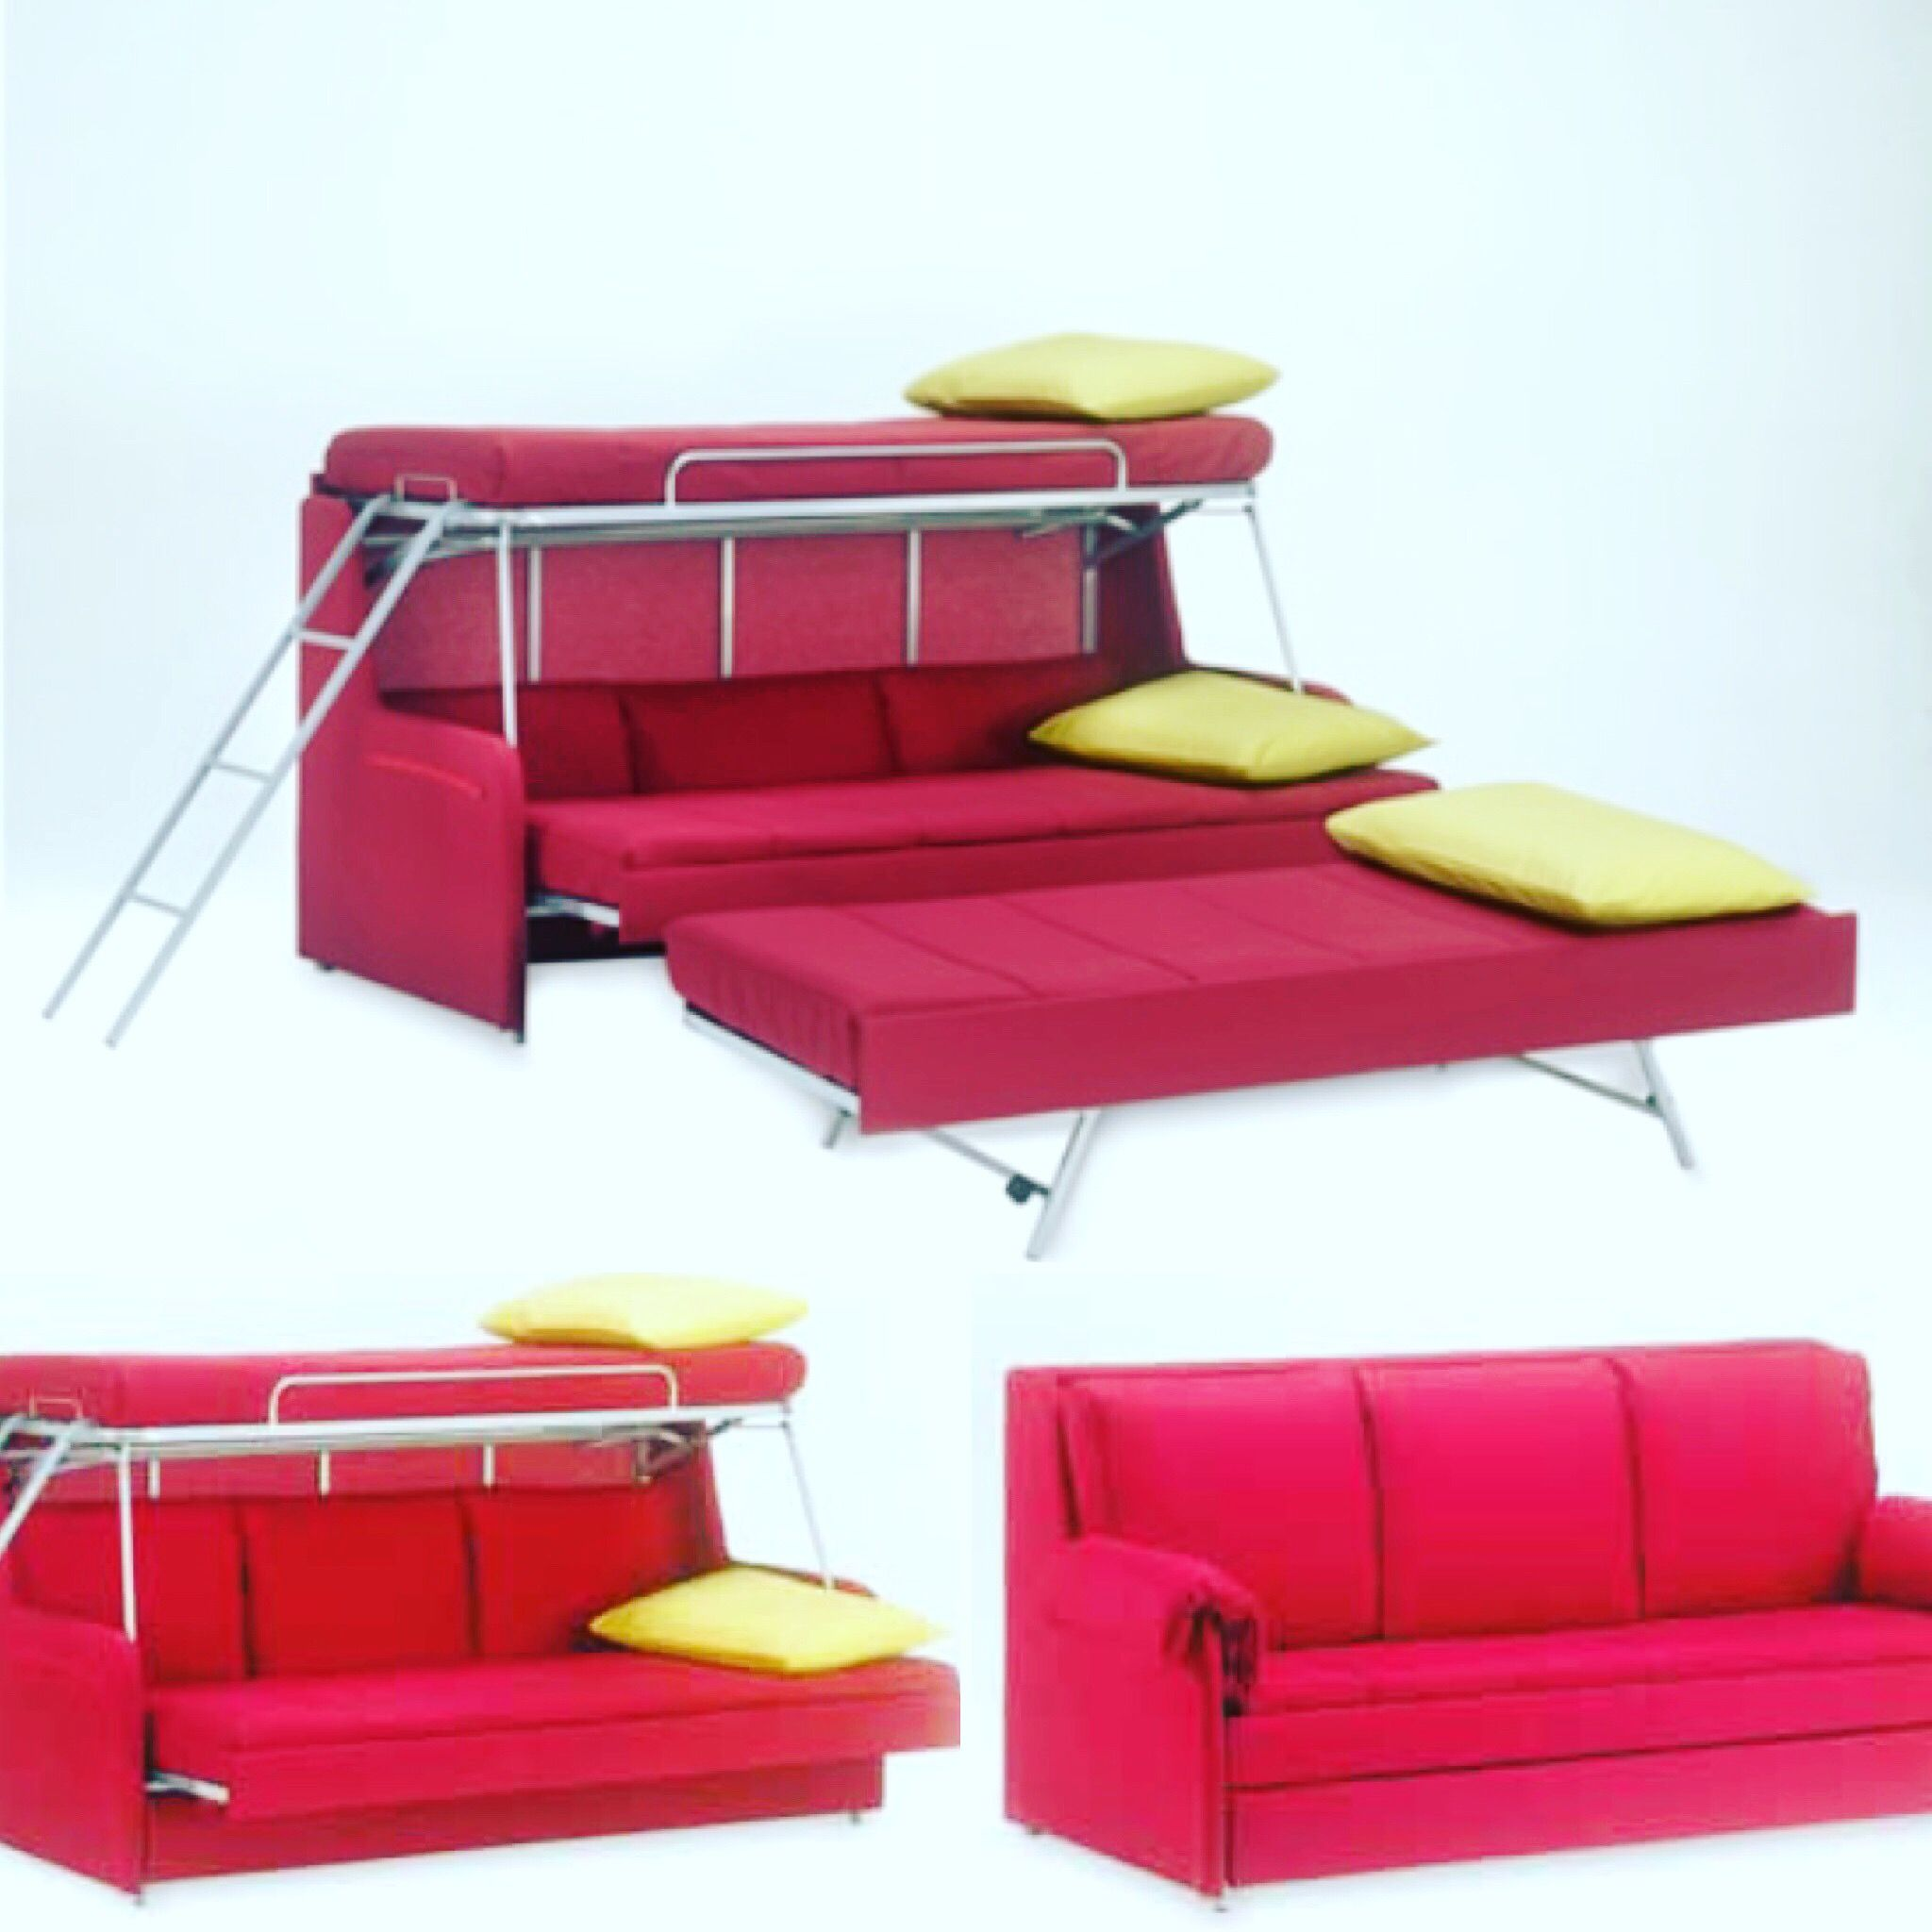 Couch Bunk Beds | Convertible Bunk Bed Couch Design : Sofa Bed Singapore  From Spaceman ... | Rv, Camper, U0026 Camping | Sofa Bed Design, Bunk Beds,  Couch Bunk ...